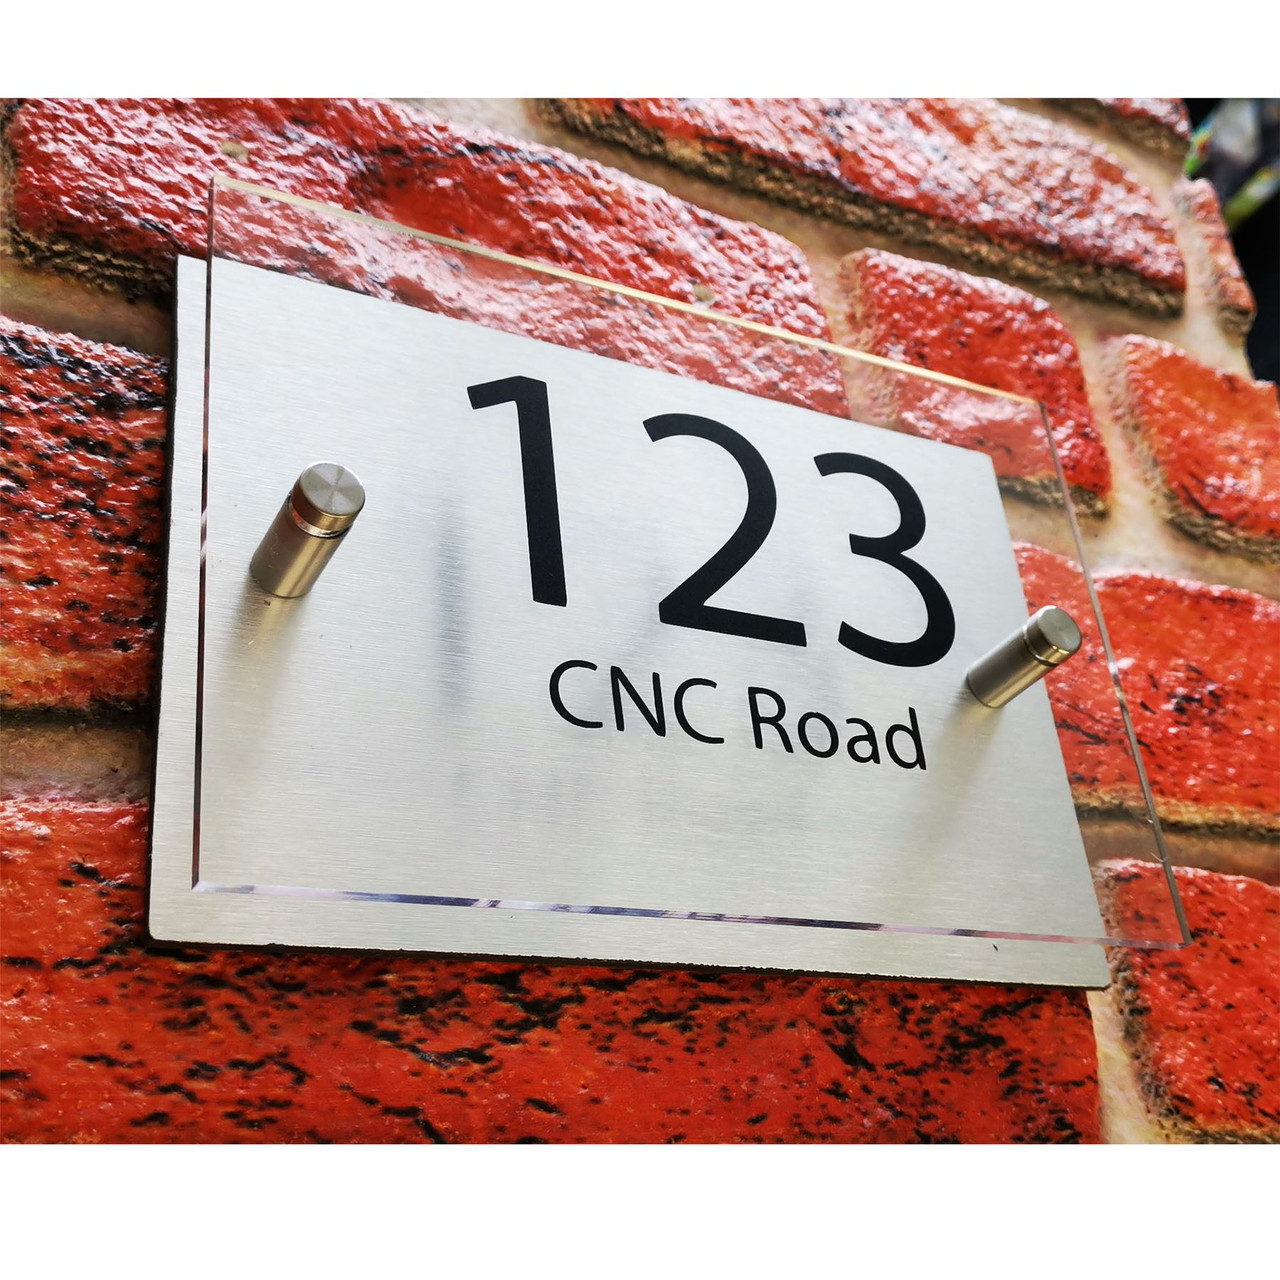 Personalised House Number Plaque Door Sign And Street Name Multiple Designs With Brushed Aluminium Backing Plate